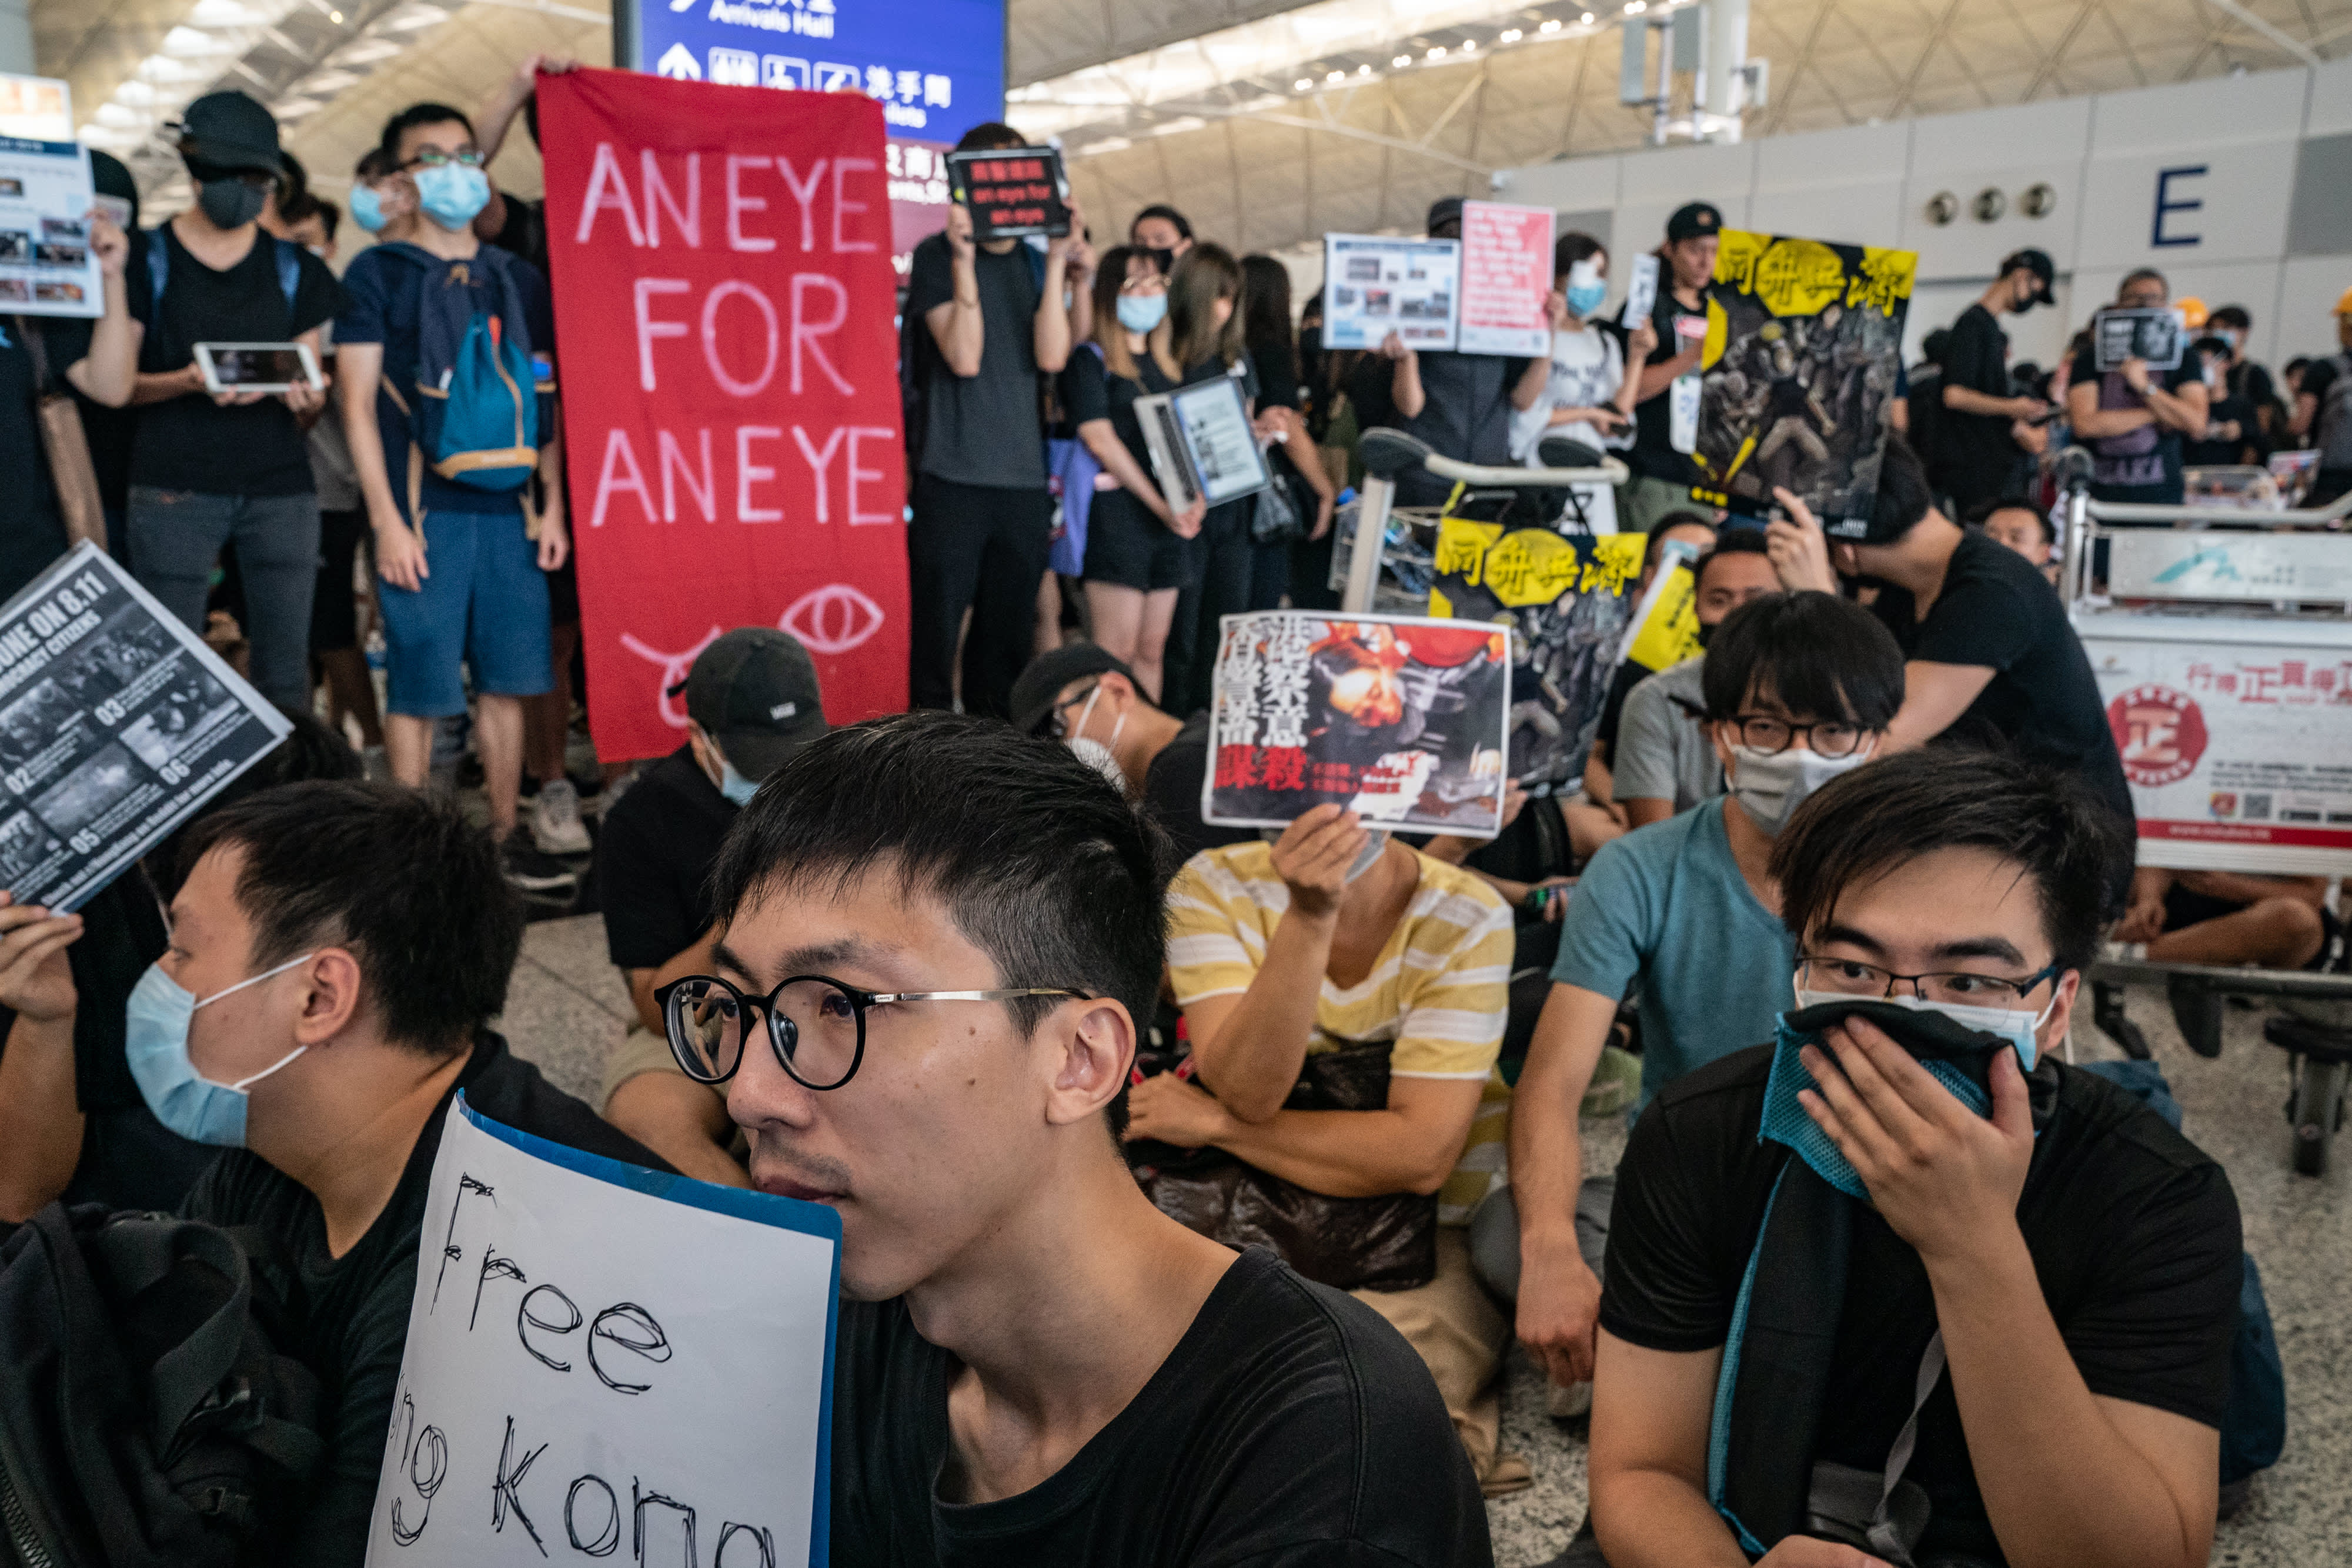 Hong Kong airport cancels all flights for the remainder of the day due to protests